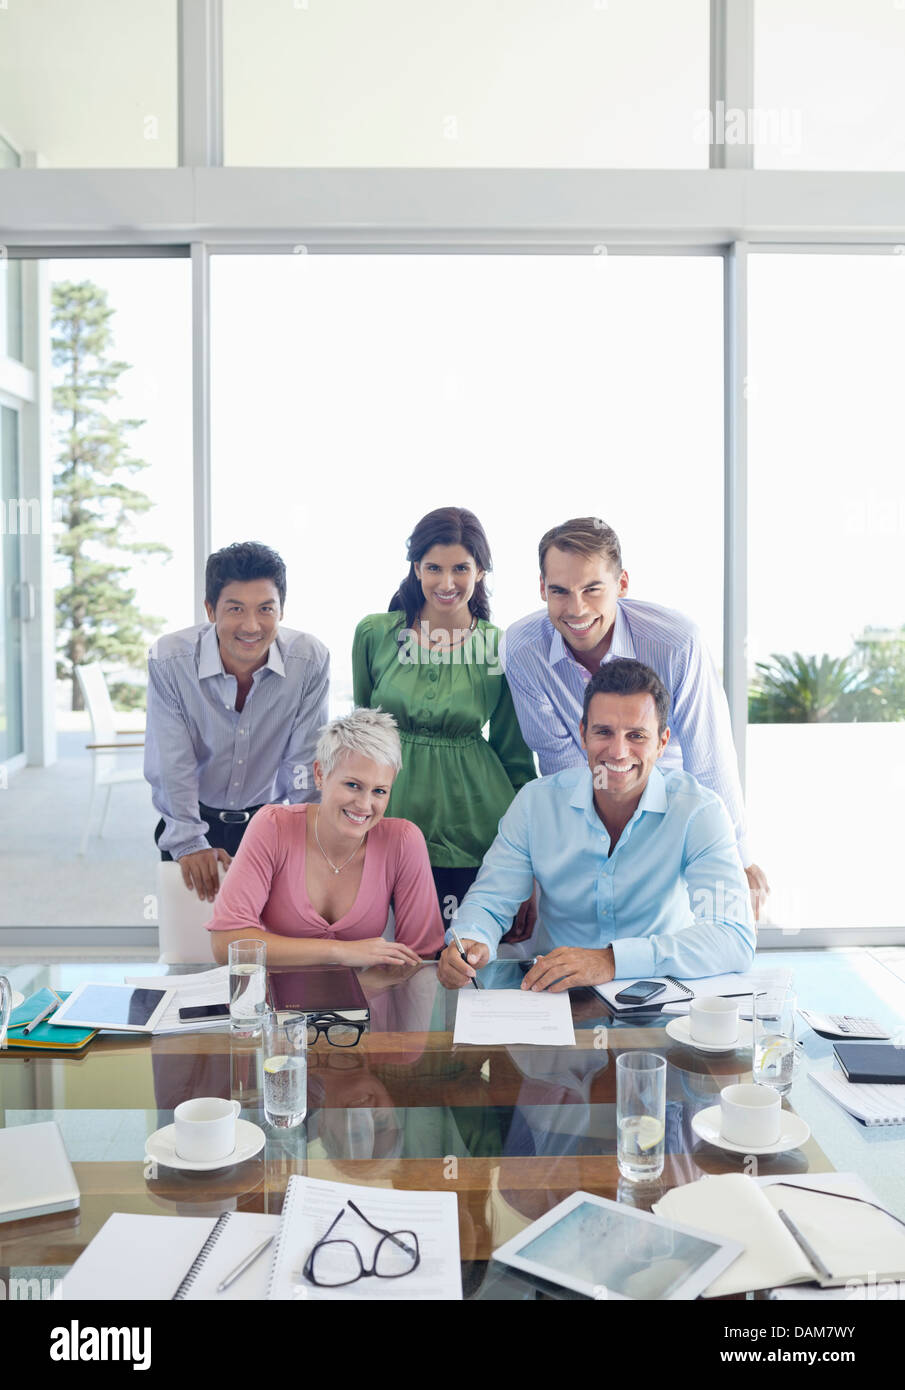 Business people smiling in meeting - Stock Image